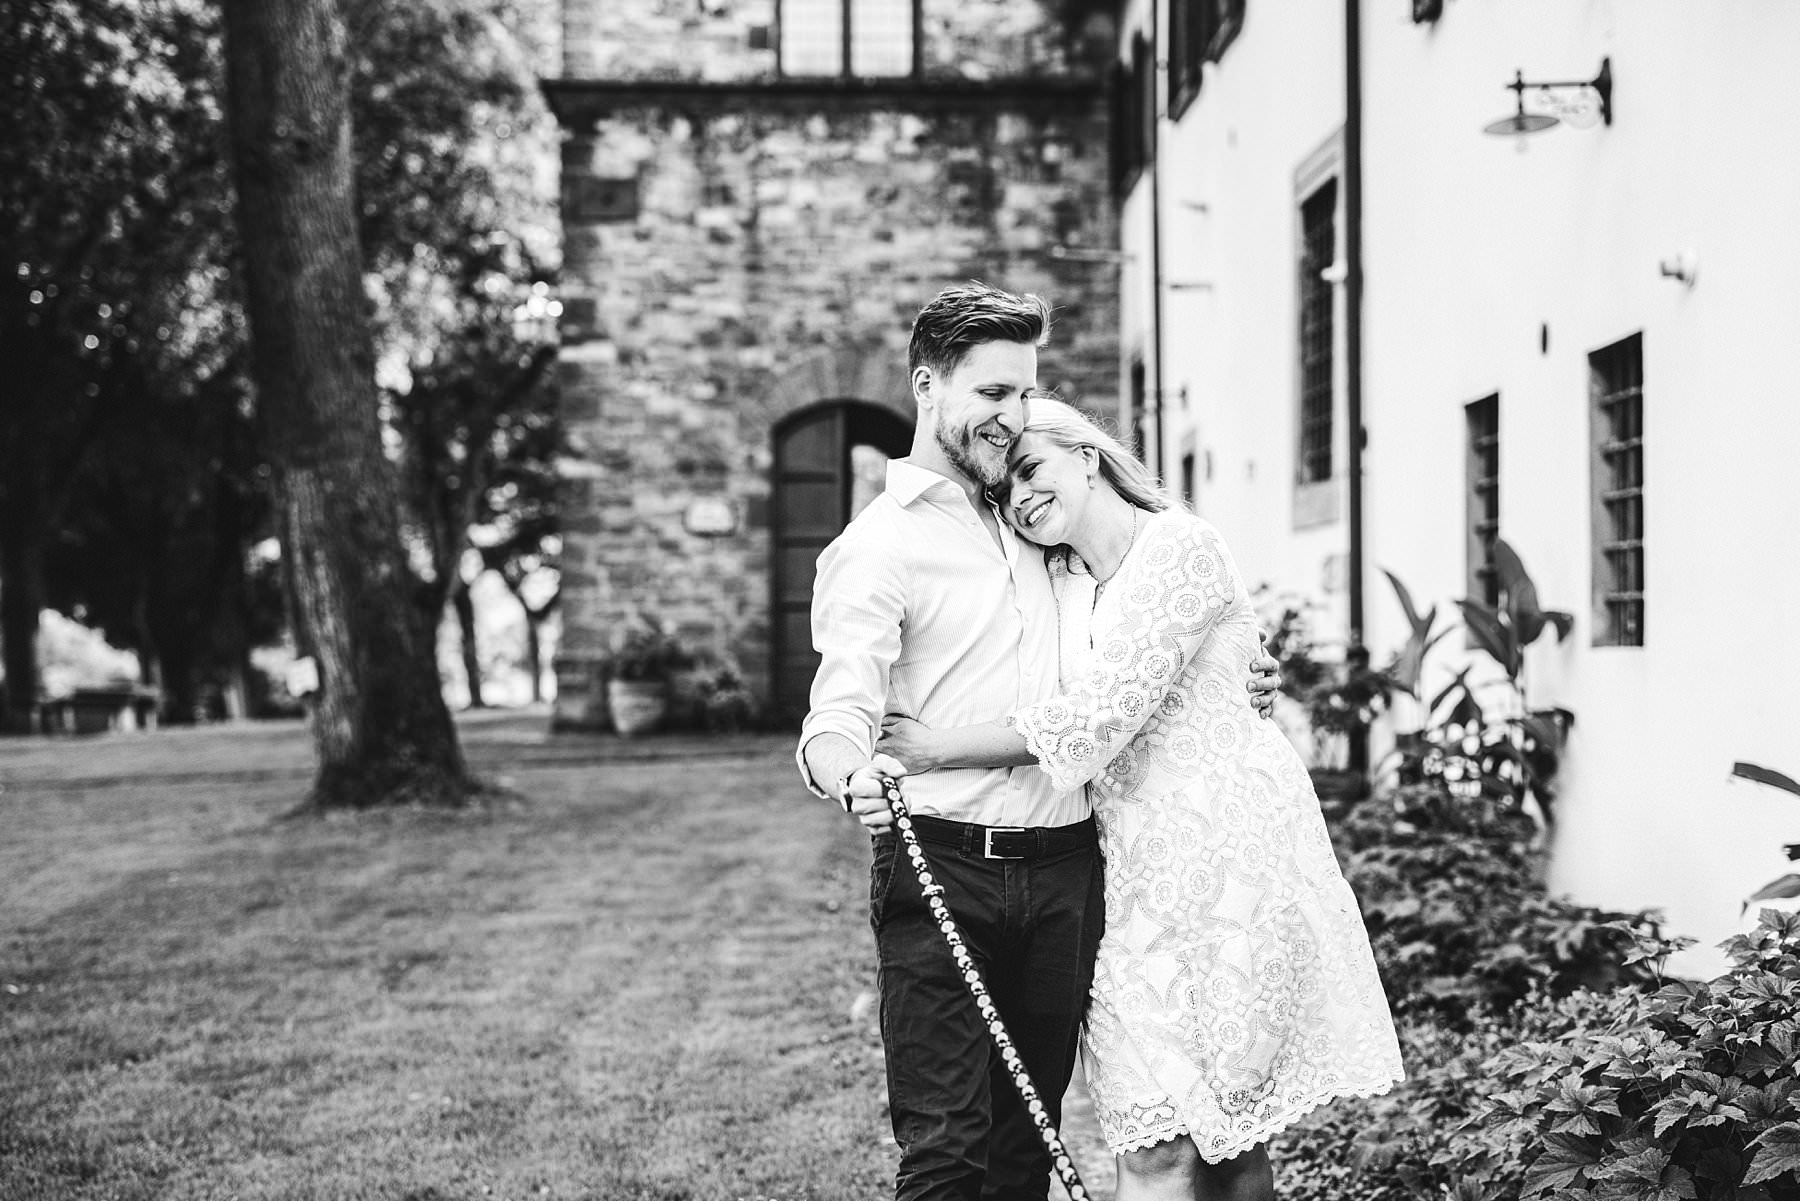 Natural and spontaneous couple portrait photo shoot at Poggio Tre Lune in the heart of Tuscany countryside near Florence.